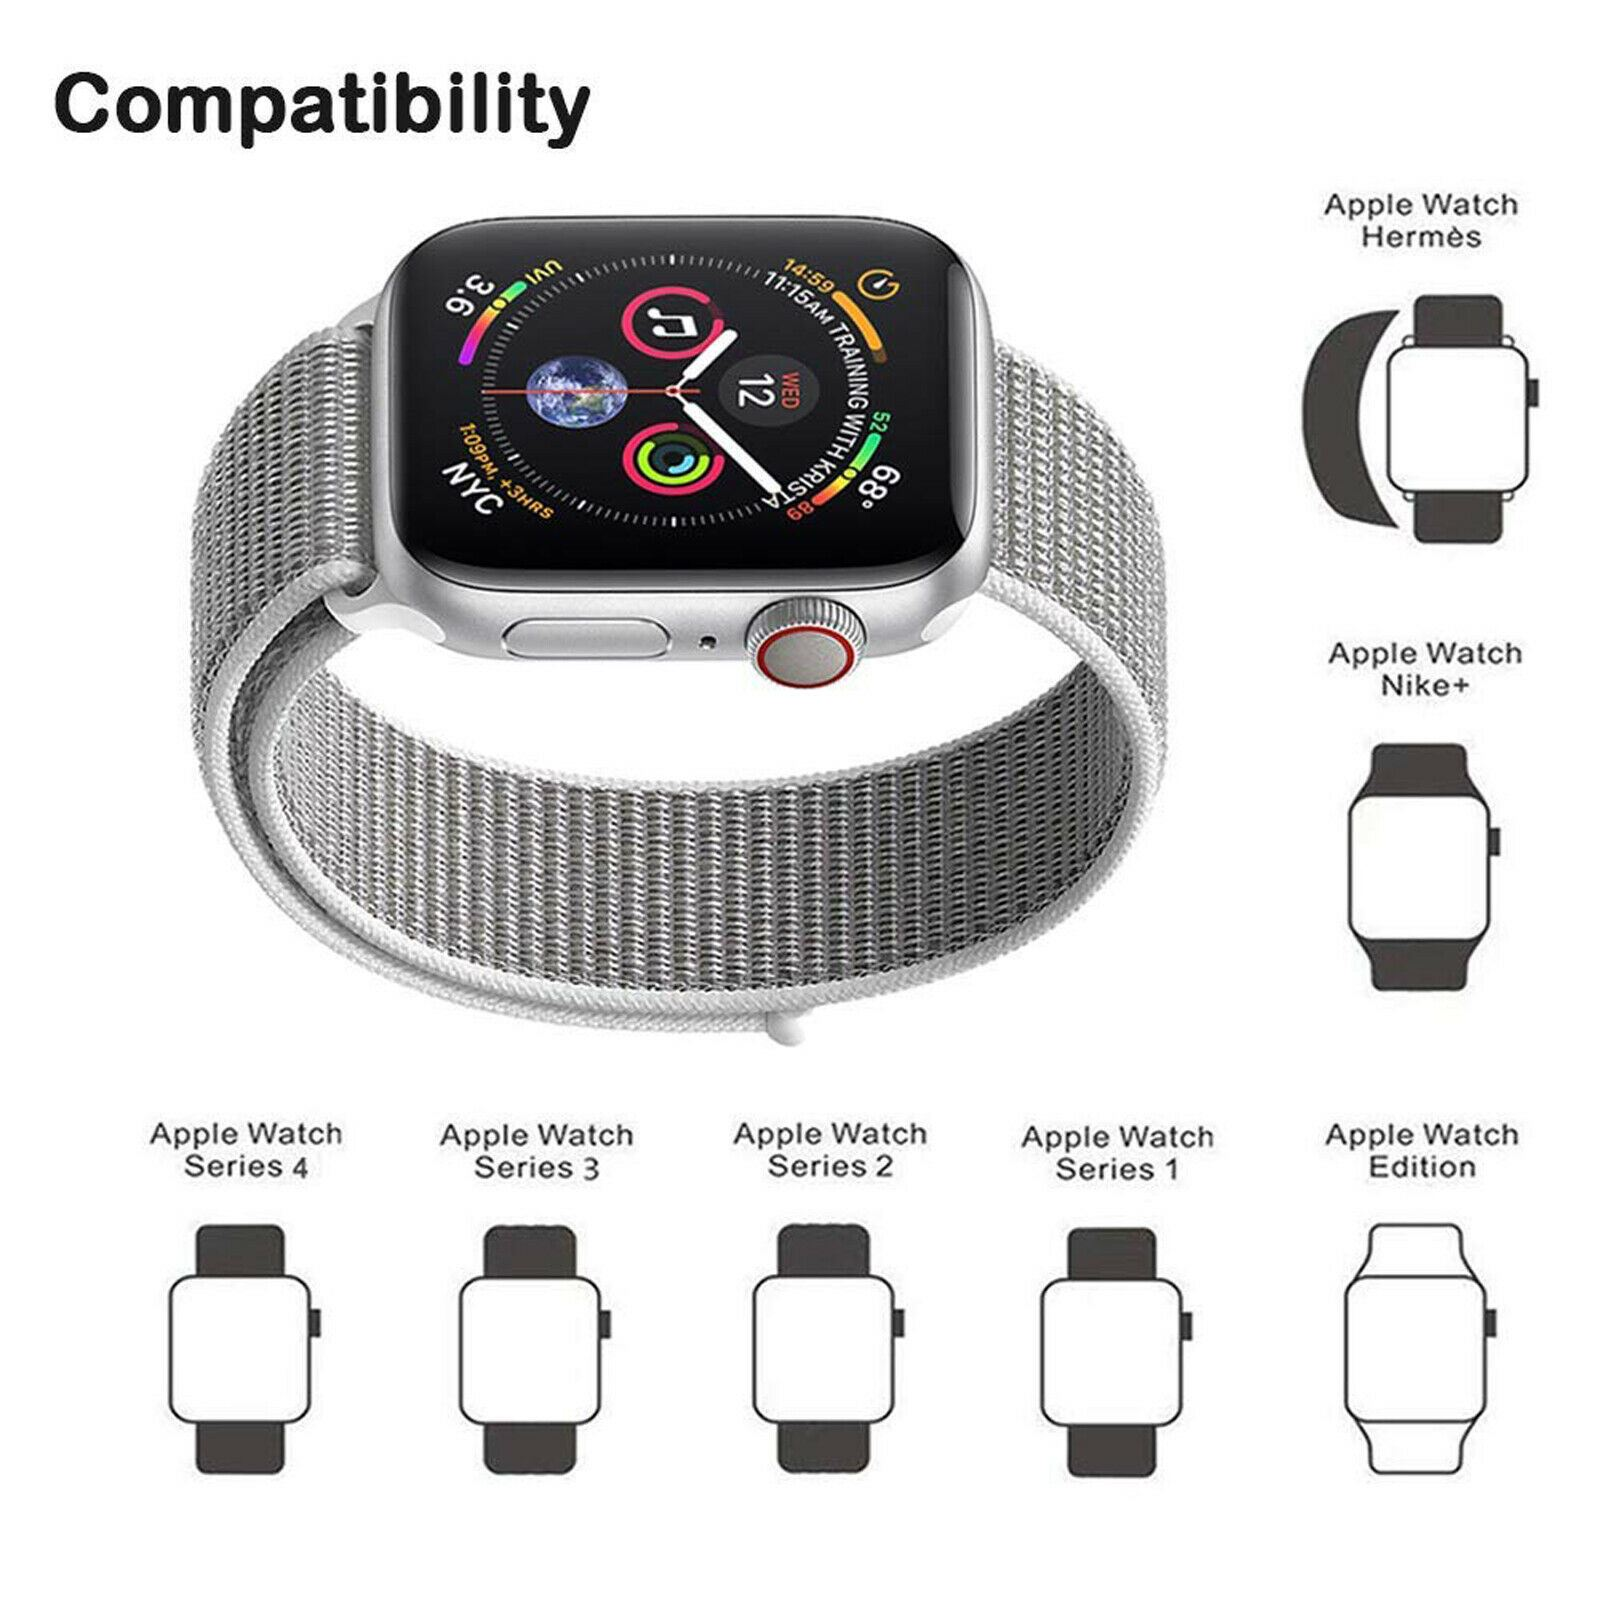 Band-Strap-For-Apple-Watch-Adjustable-Waterproof-Braided-Nylon-Material thumbnail 9